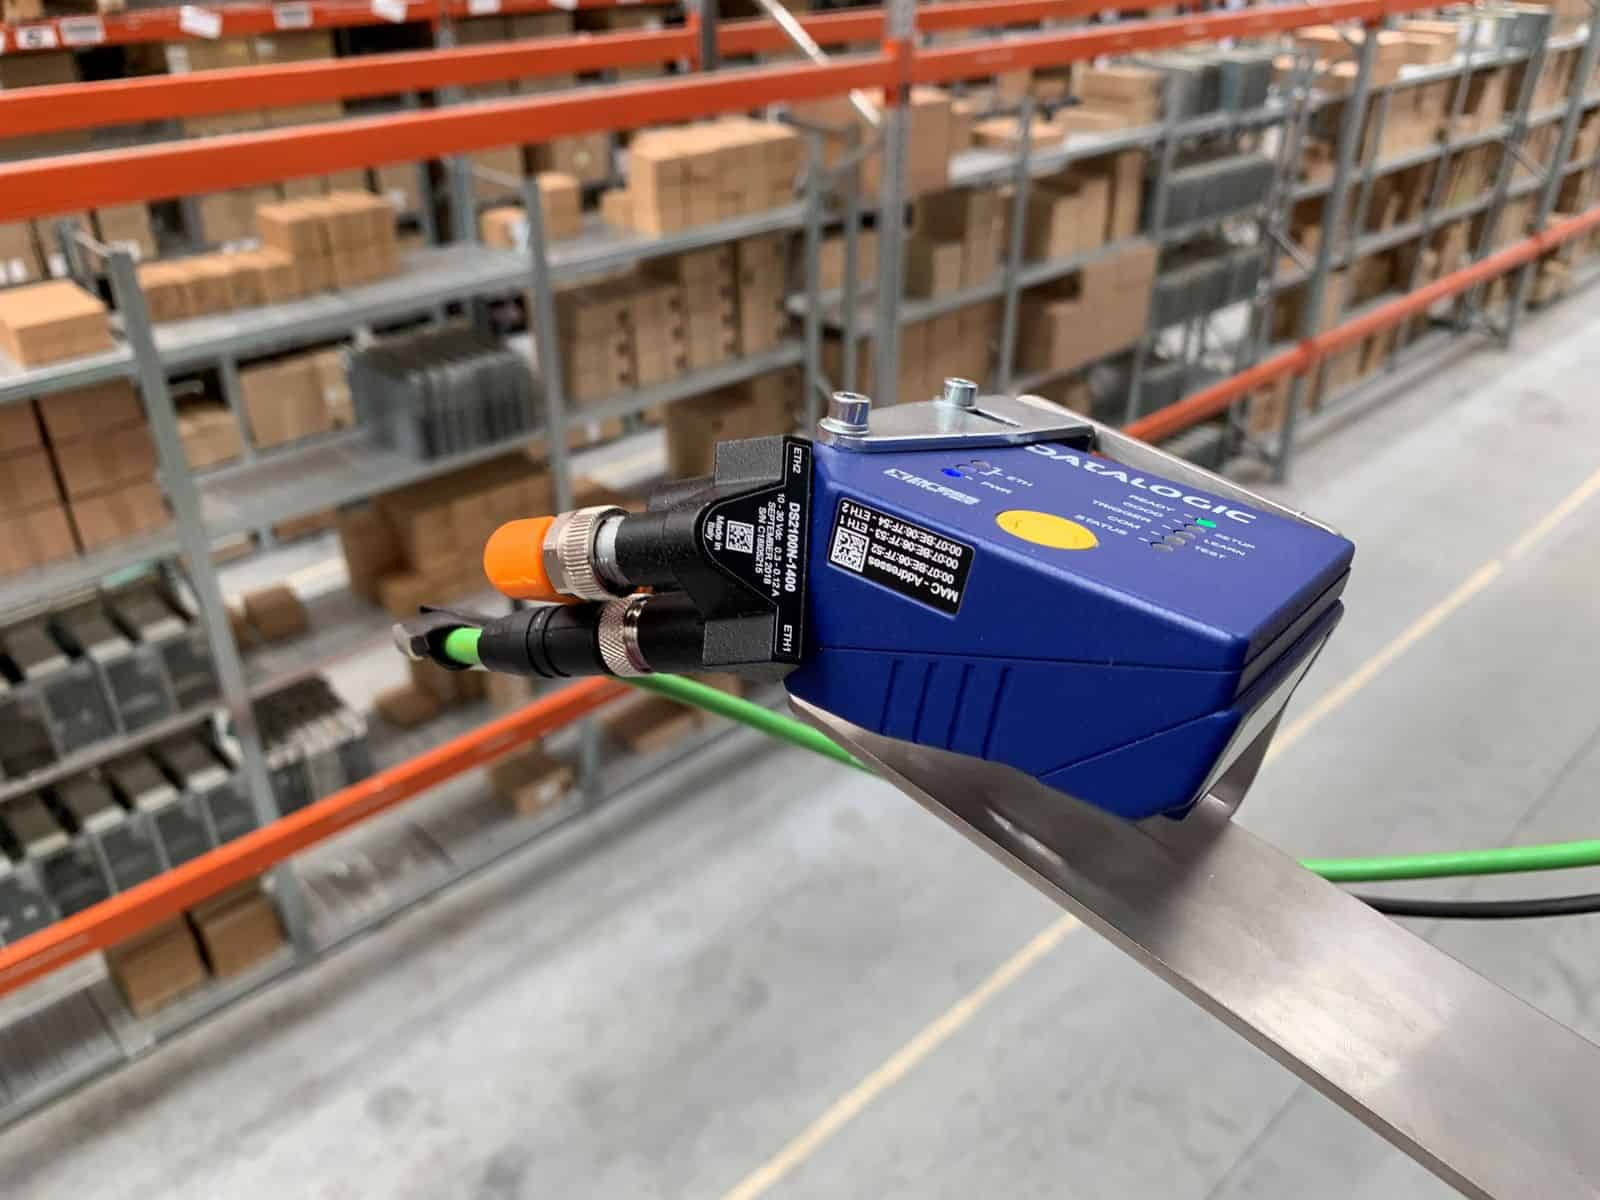 IA Barcode scanner Logistic systems